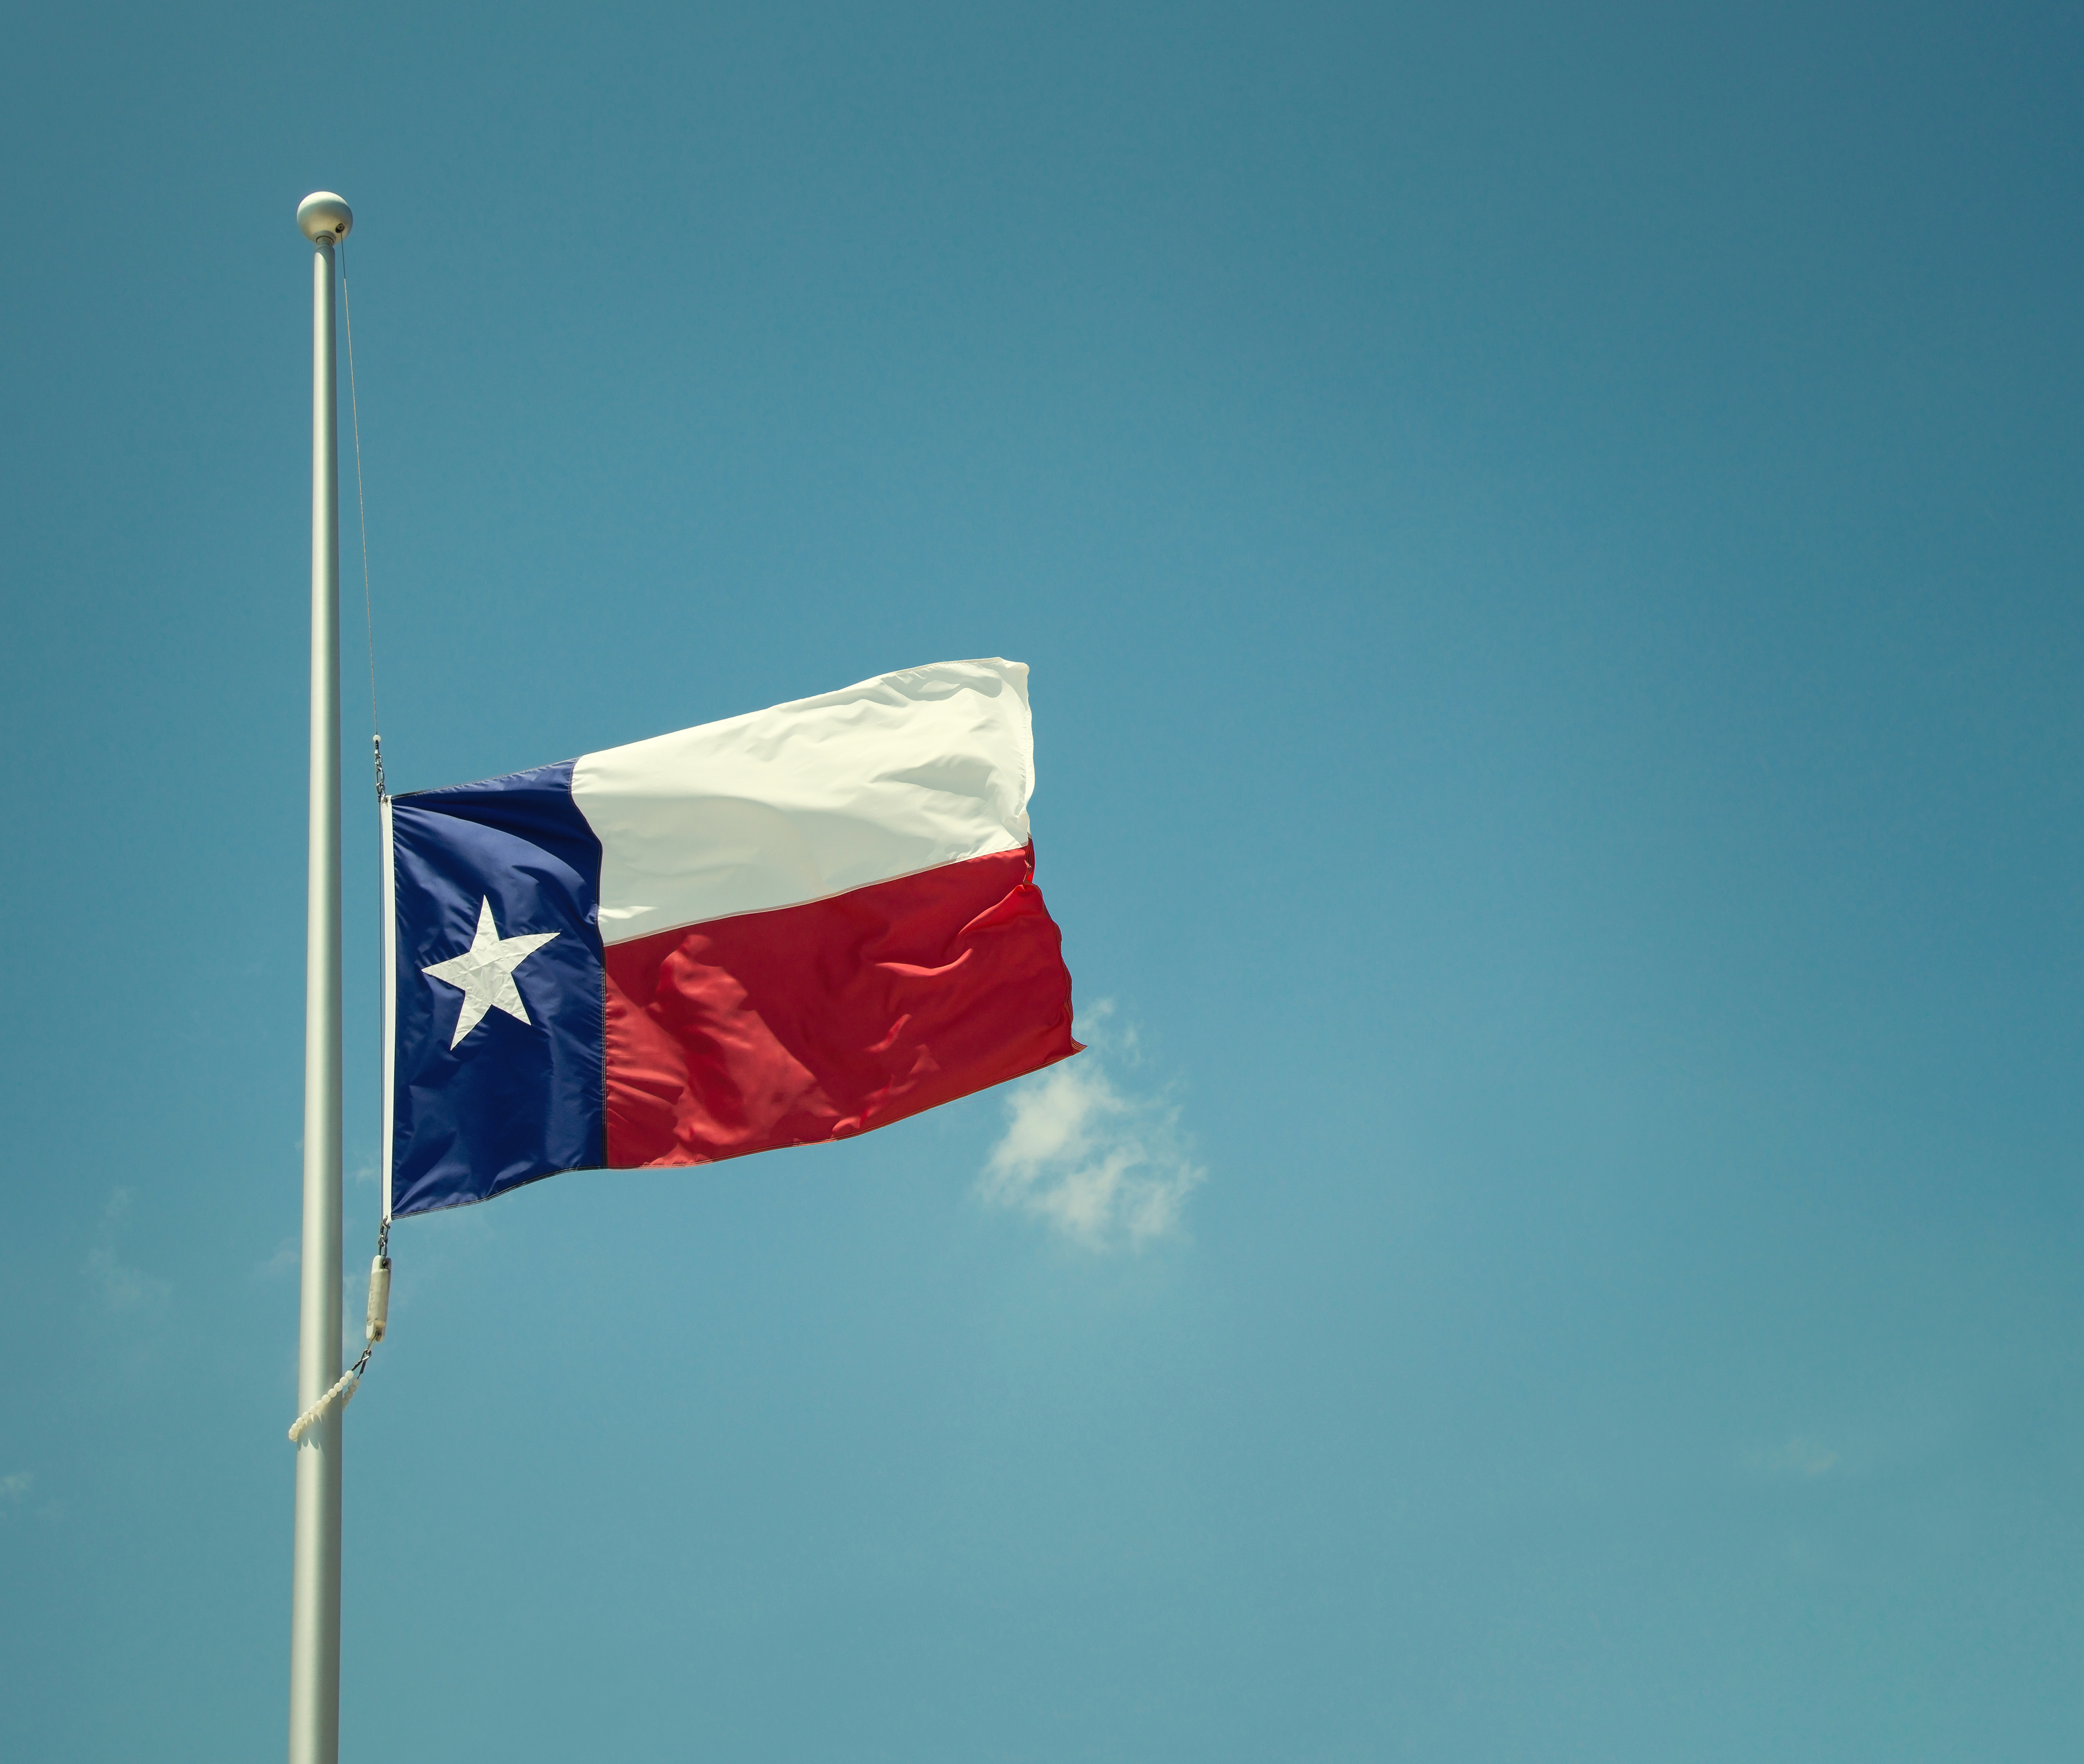 Texas to use death certificates, not health department data, to determine COVID deaths